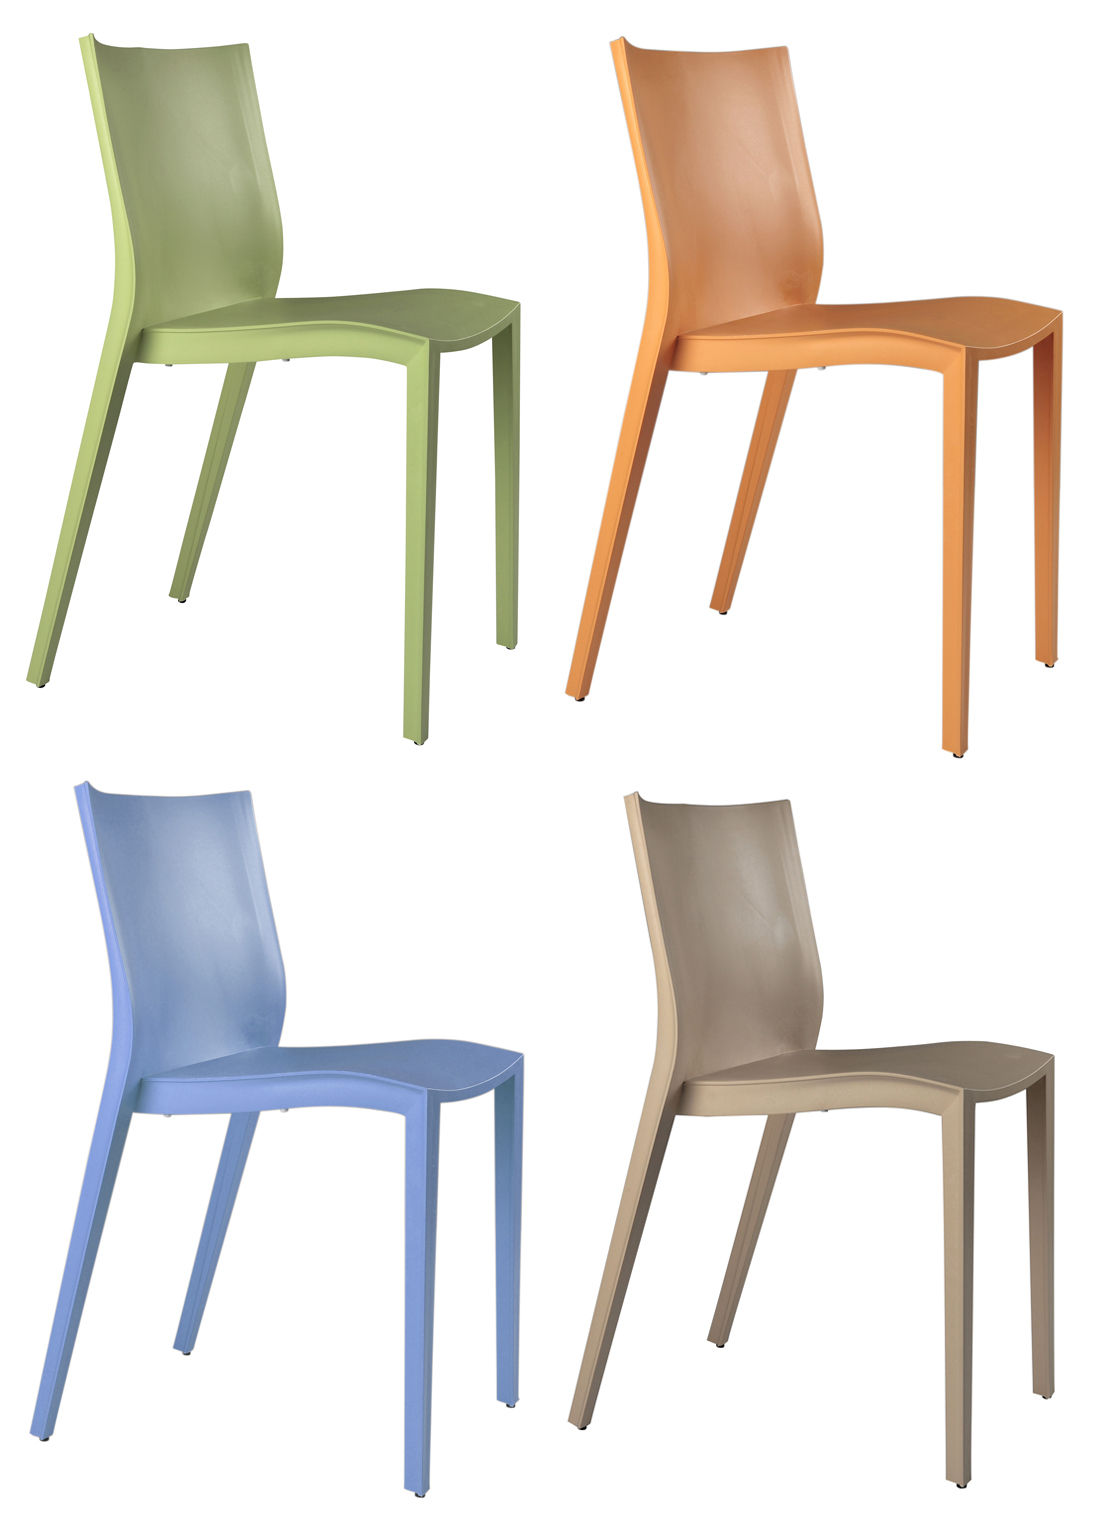 miniature mini slick slick lot de 4 chaises vert orange bleu ciel beige xo. Black Bedroom Furniture Sets. Home Design Ideas